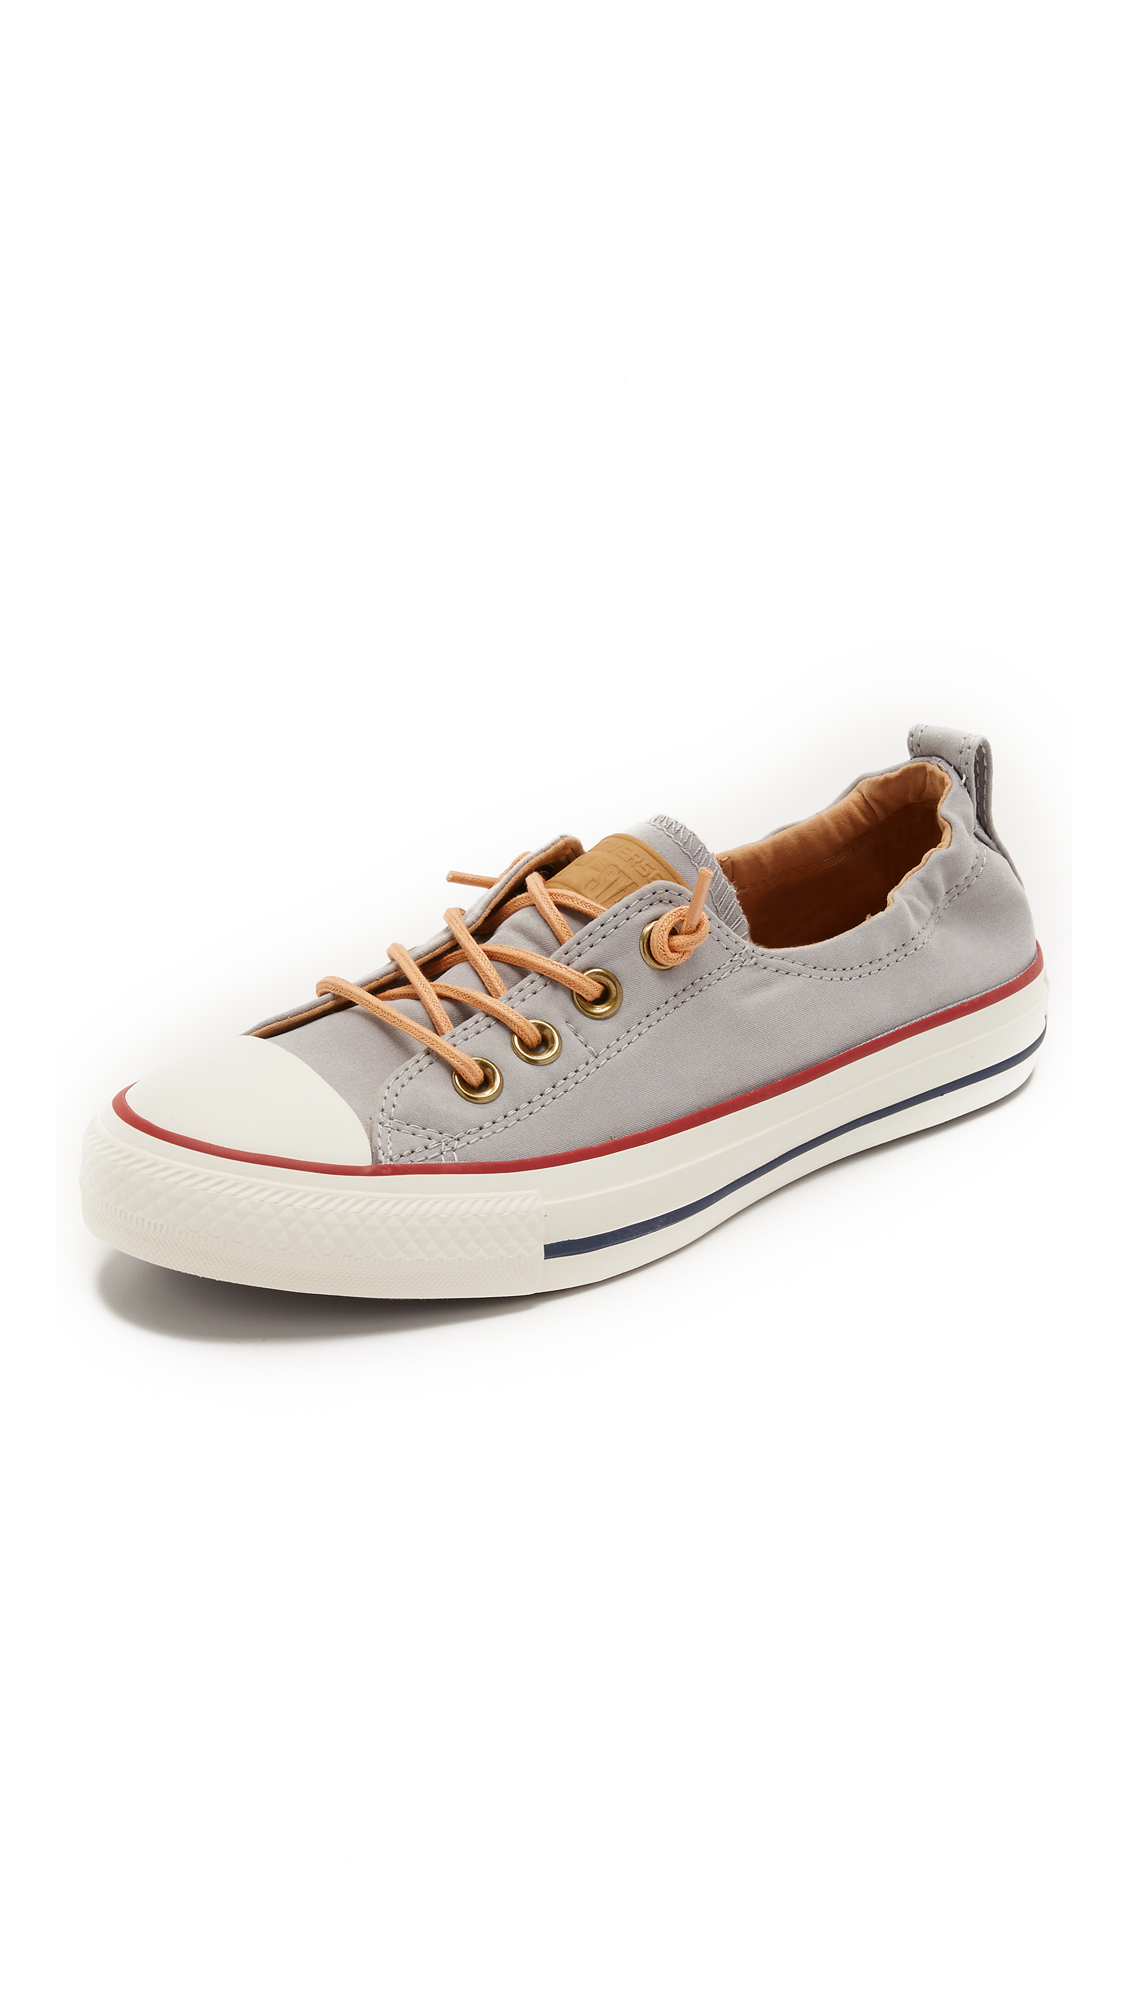 8b5705848a2 Converse Gray Chuck Taylor All Star Shoreline Sneakers - White/biscuit/egret